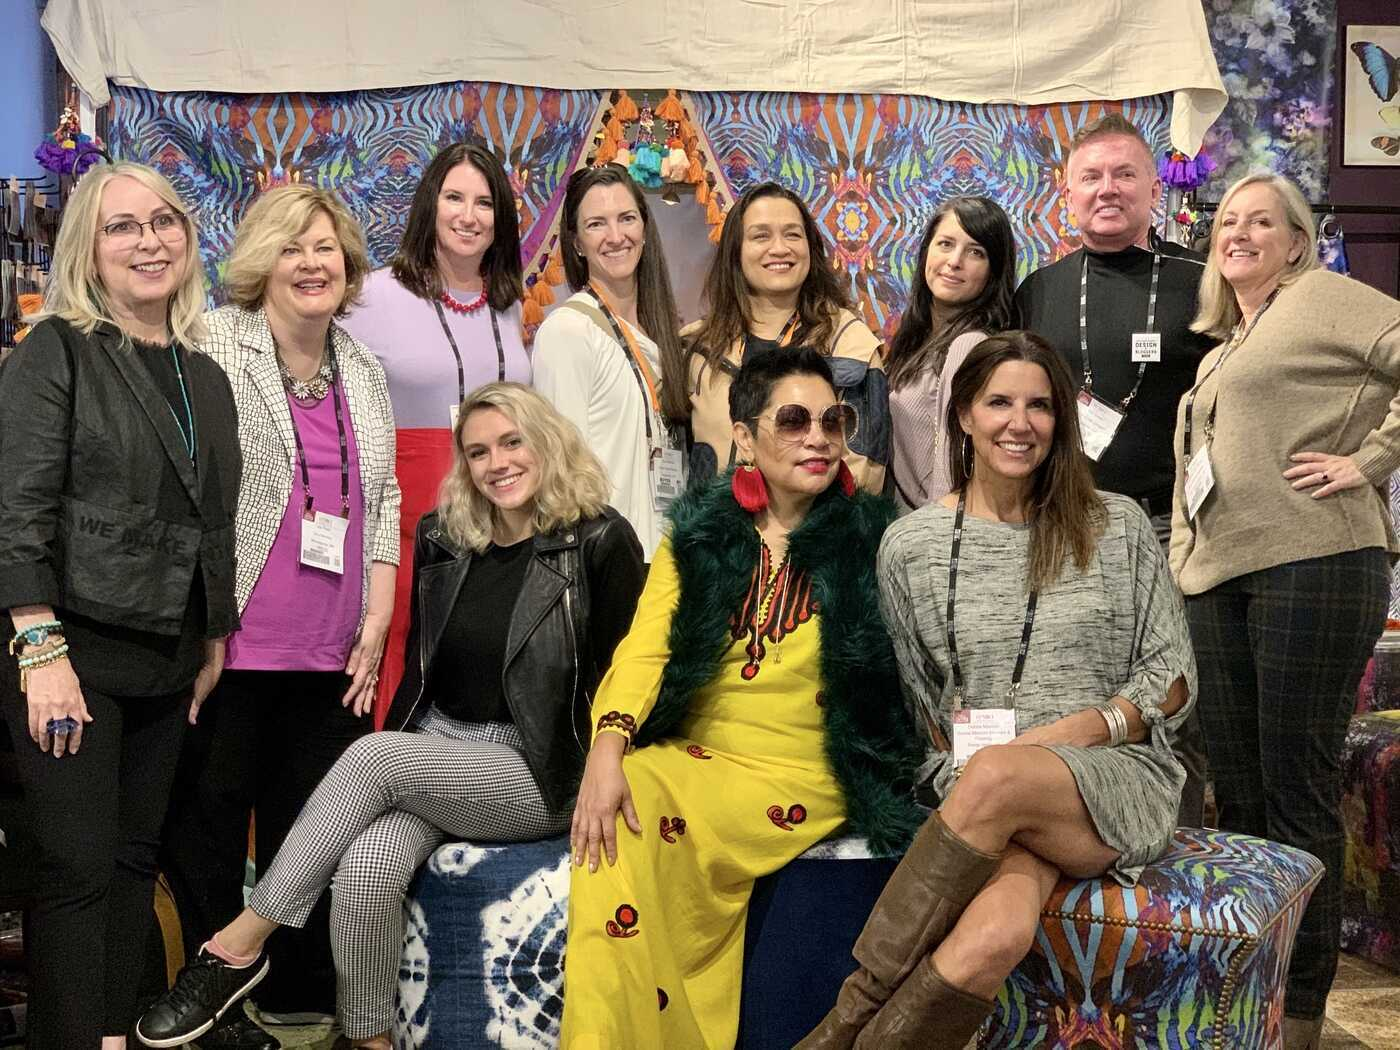 Melanie Honig (far left) and designers and bloggers on the High Point Market fall 2019 Design Bloggers Tour.